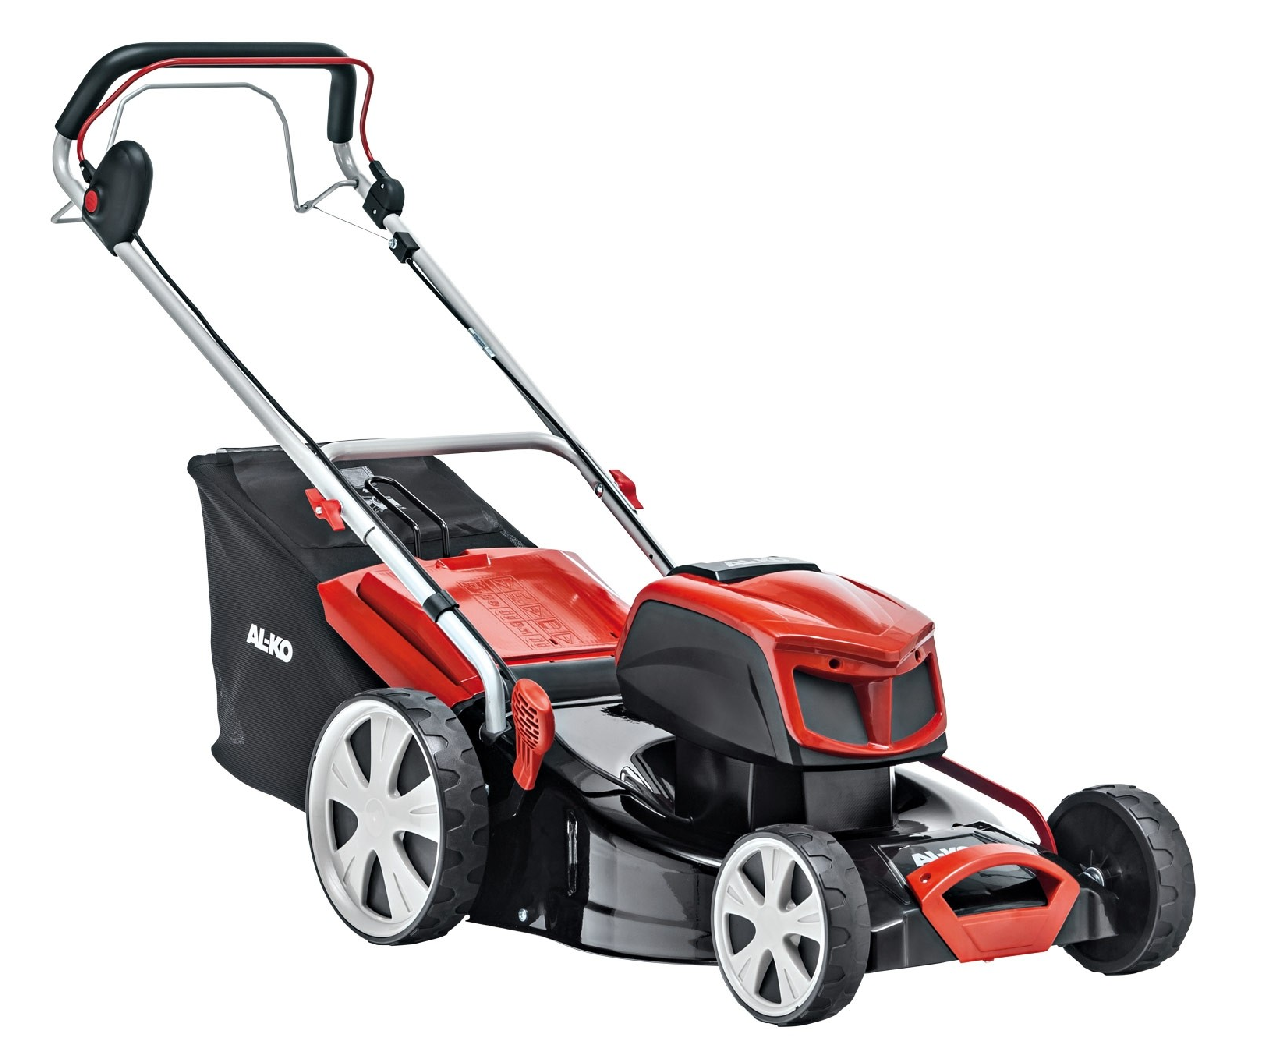 AL-KO EnergyFlex 4.69Li SP Moweo battery self-propelled four wheeled lawn mower (46cm cut)